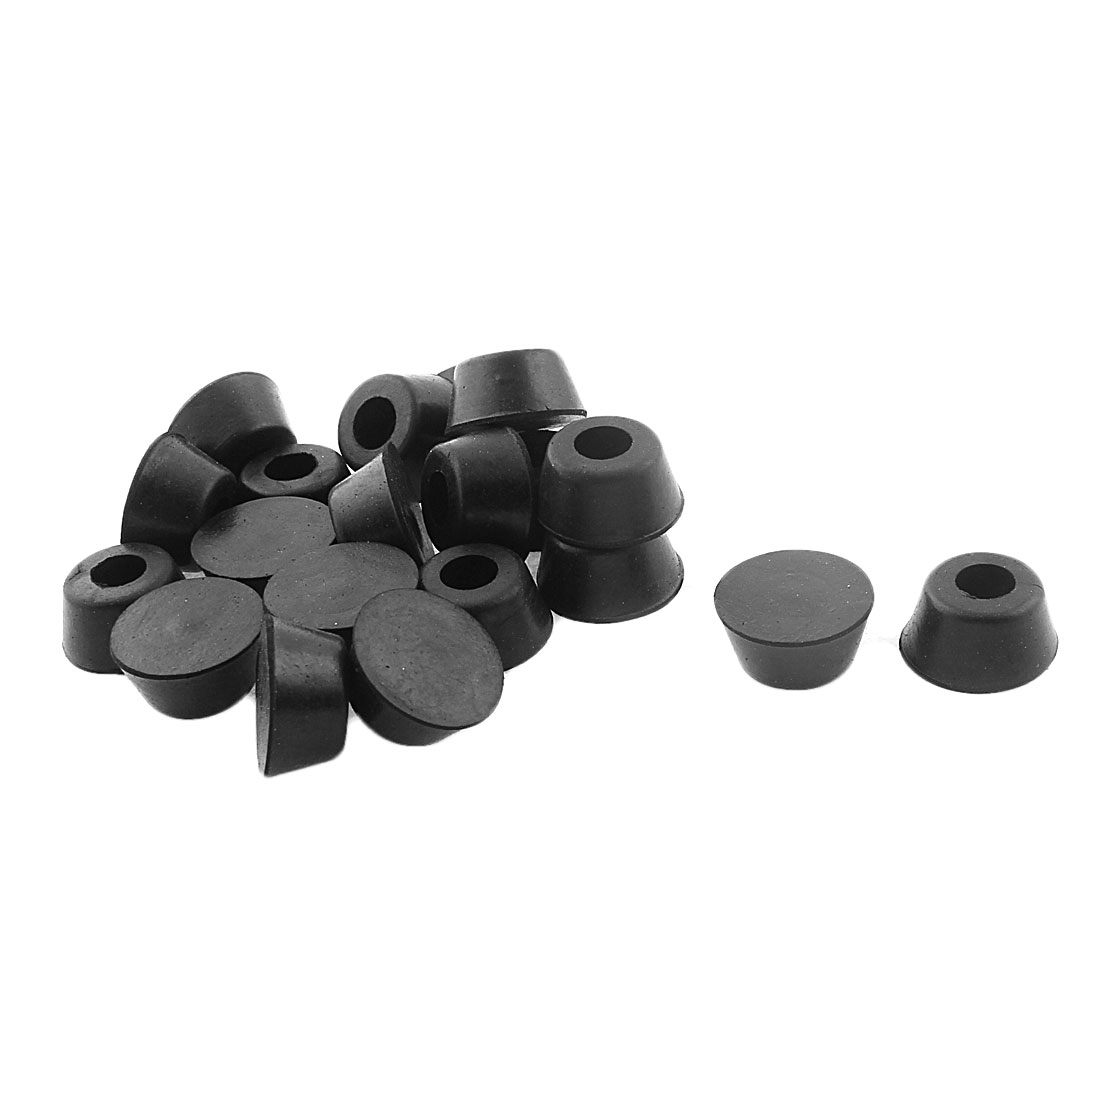 21mm x 17mm x 10mm Cabinet Amplifier Speaker Furniture Table Chair Rubber Feet Pad Black 20pcs